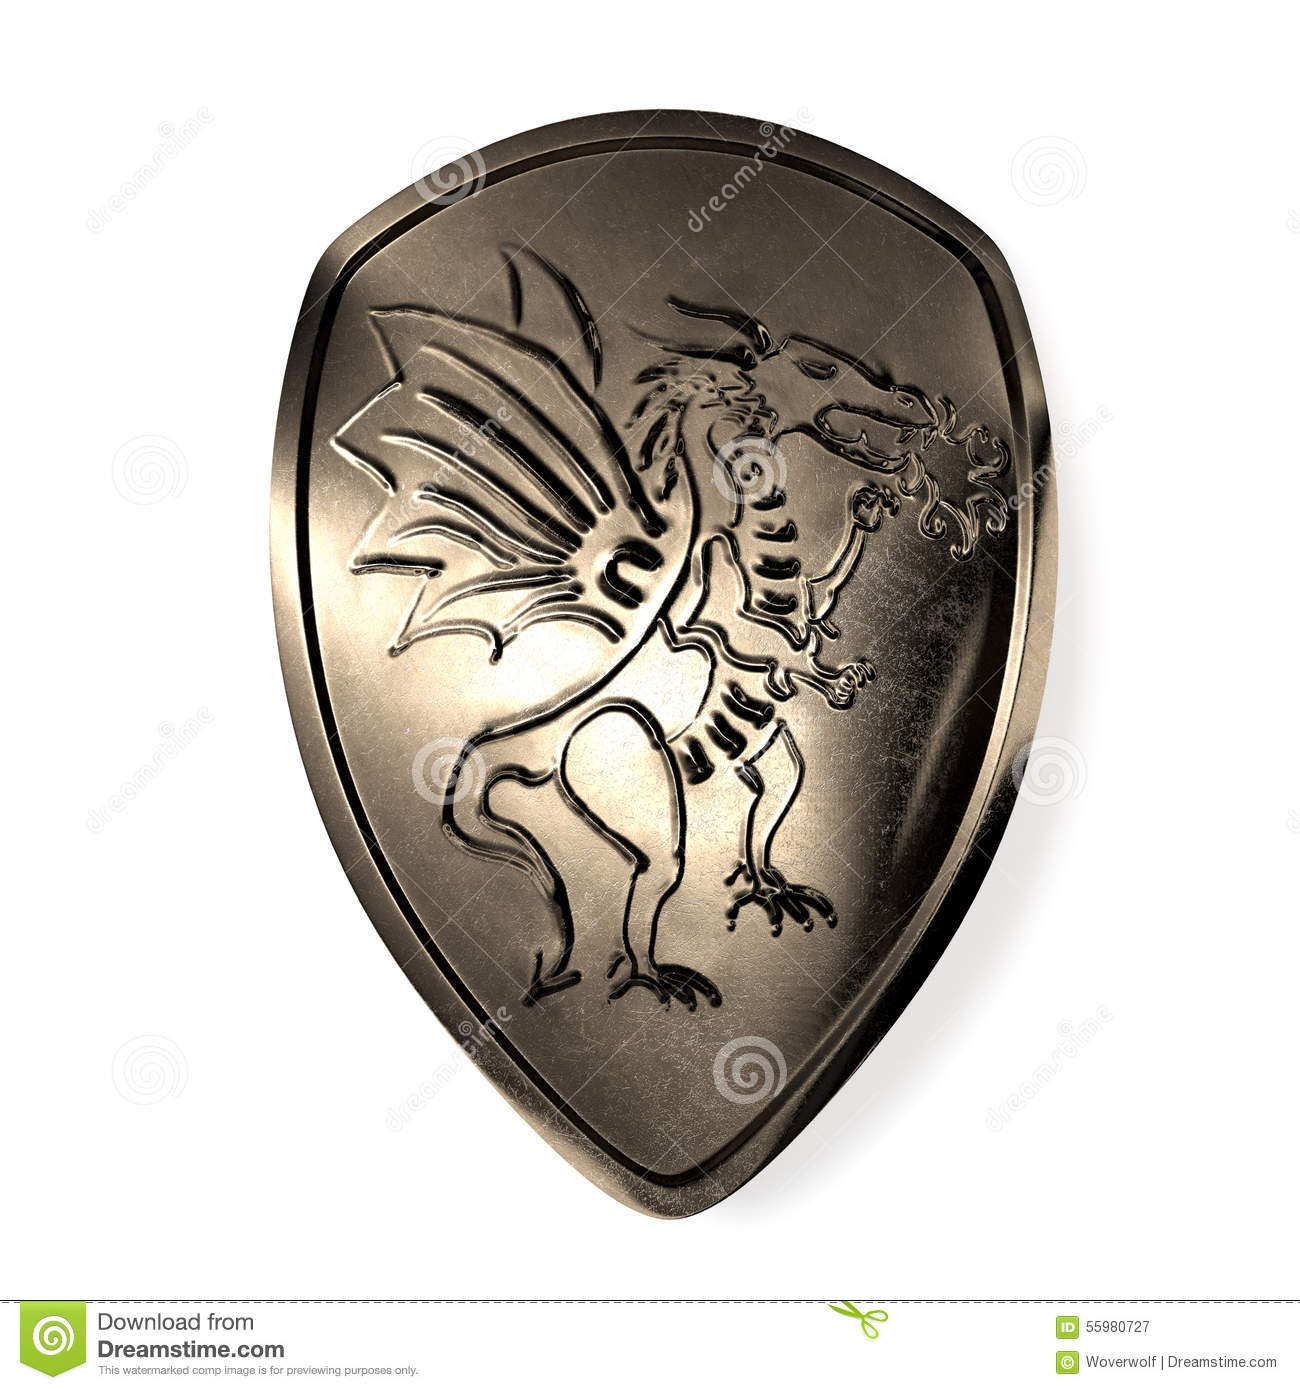 Shield design set royalty free stock photos image 5051988 - Shield With Dragon Royalty Free Stock Photography